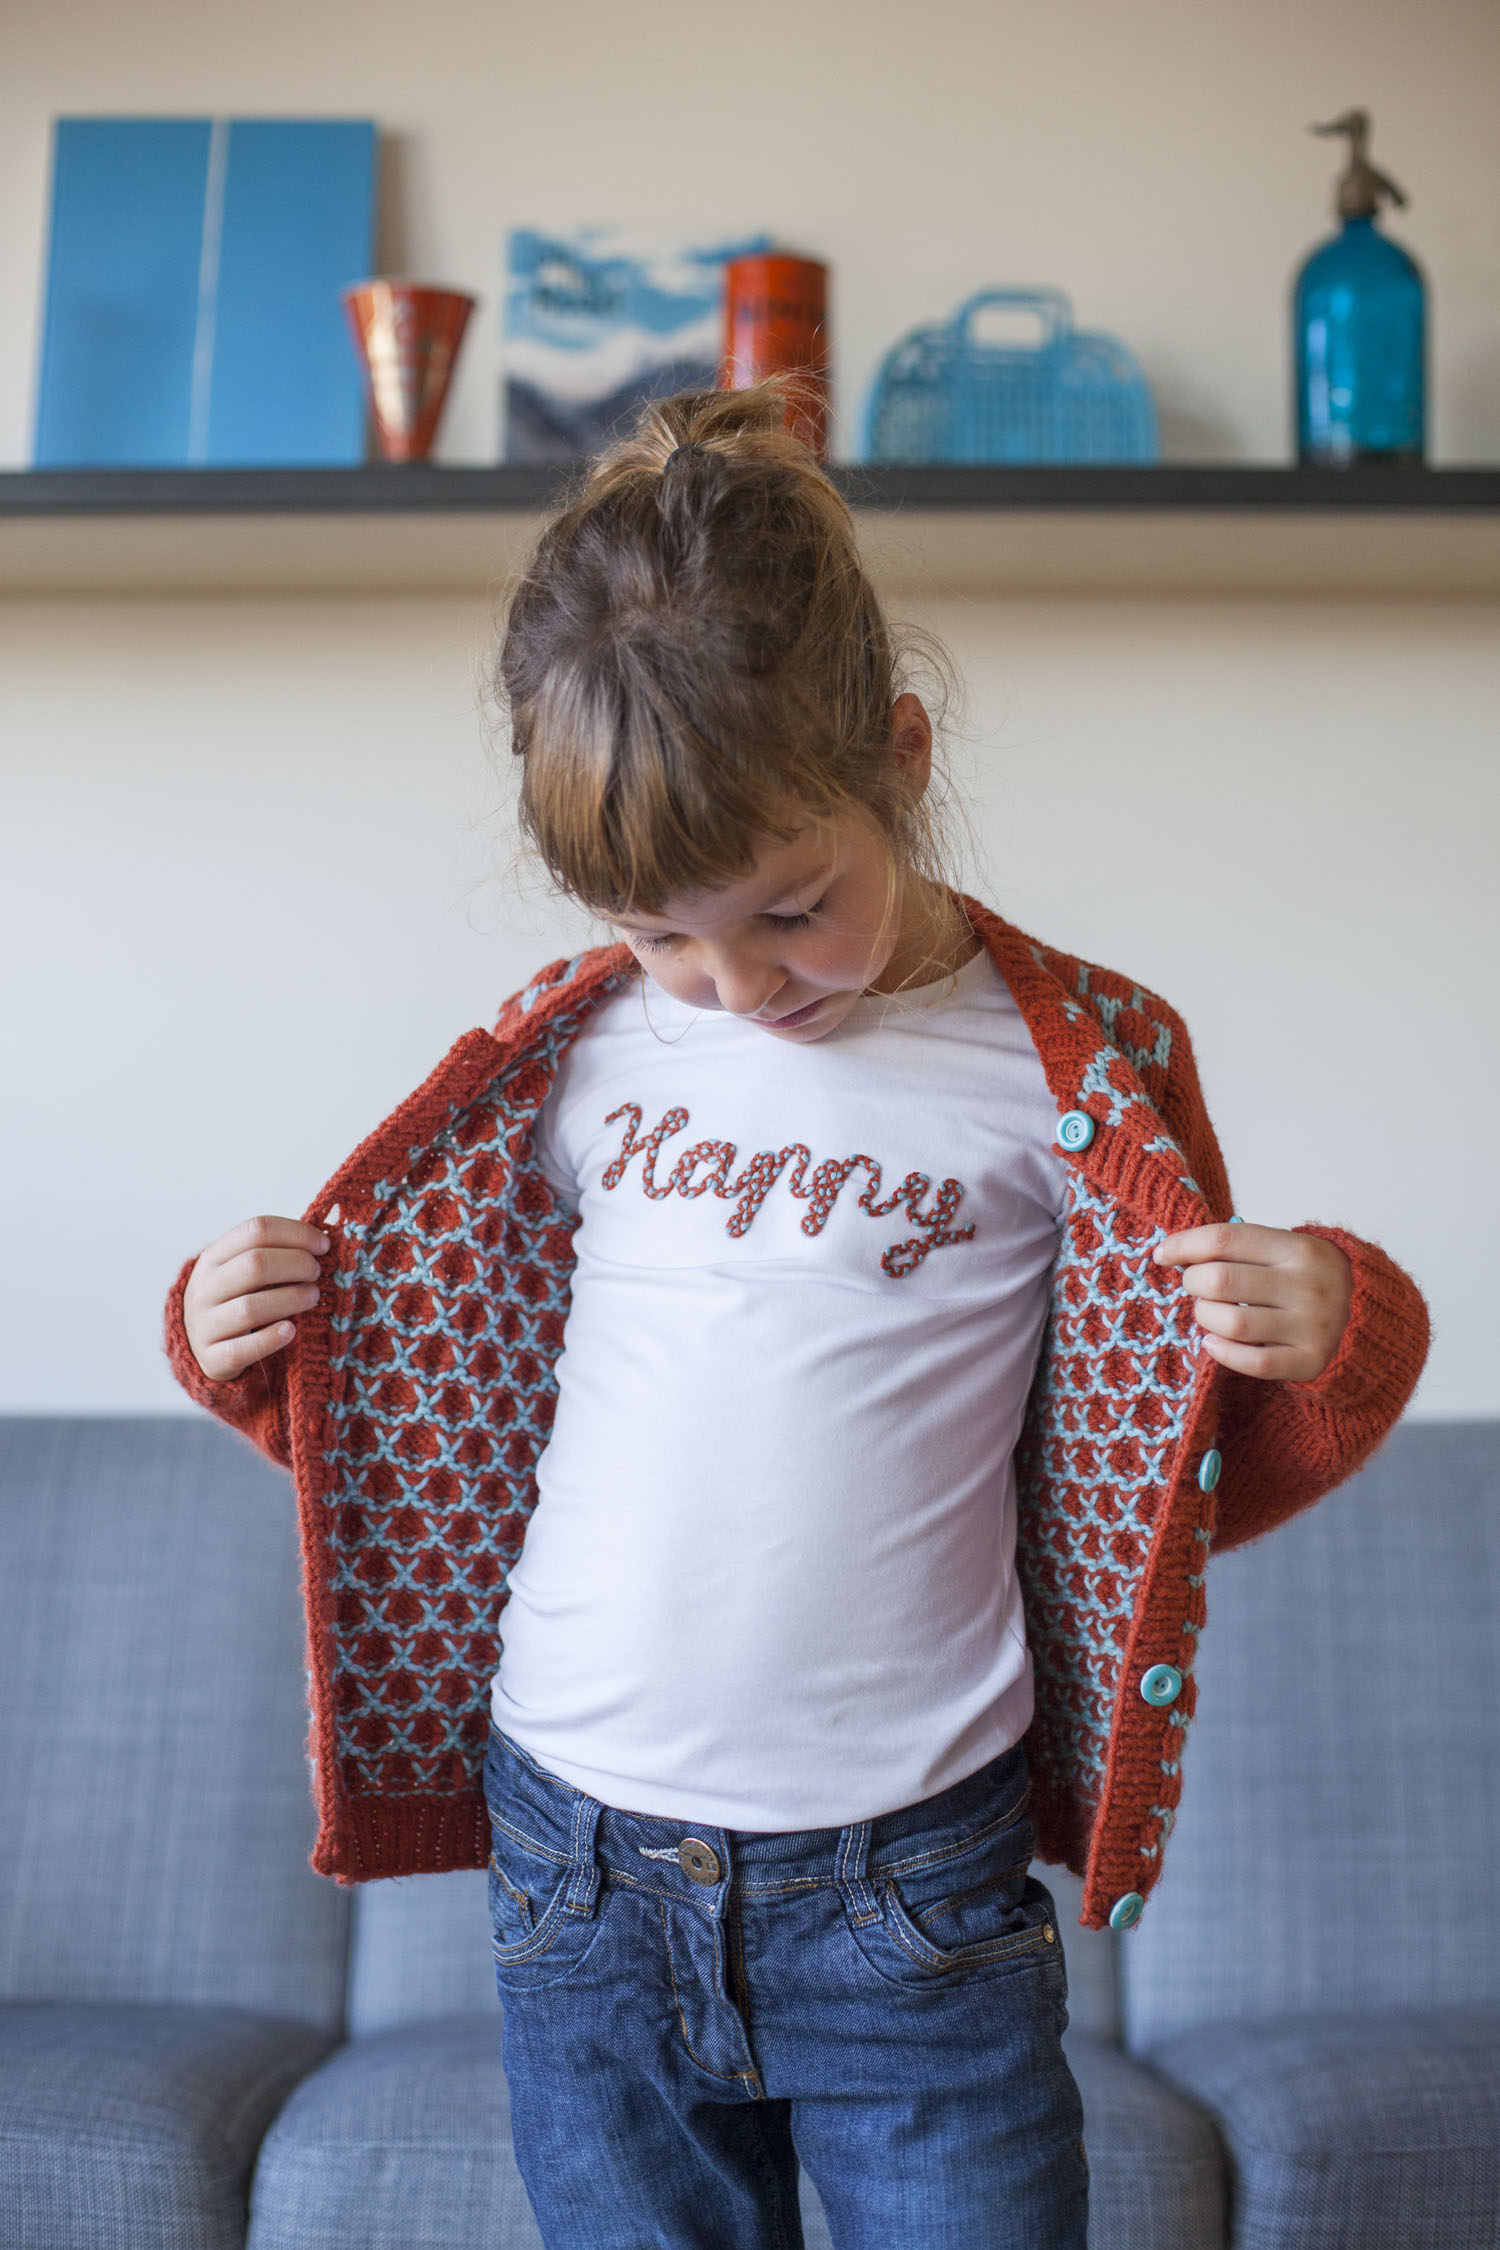 The Dadirri cardigan: the intro of a new knitting pattern